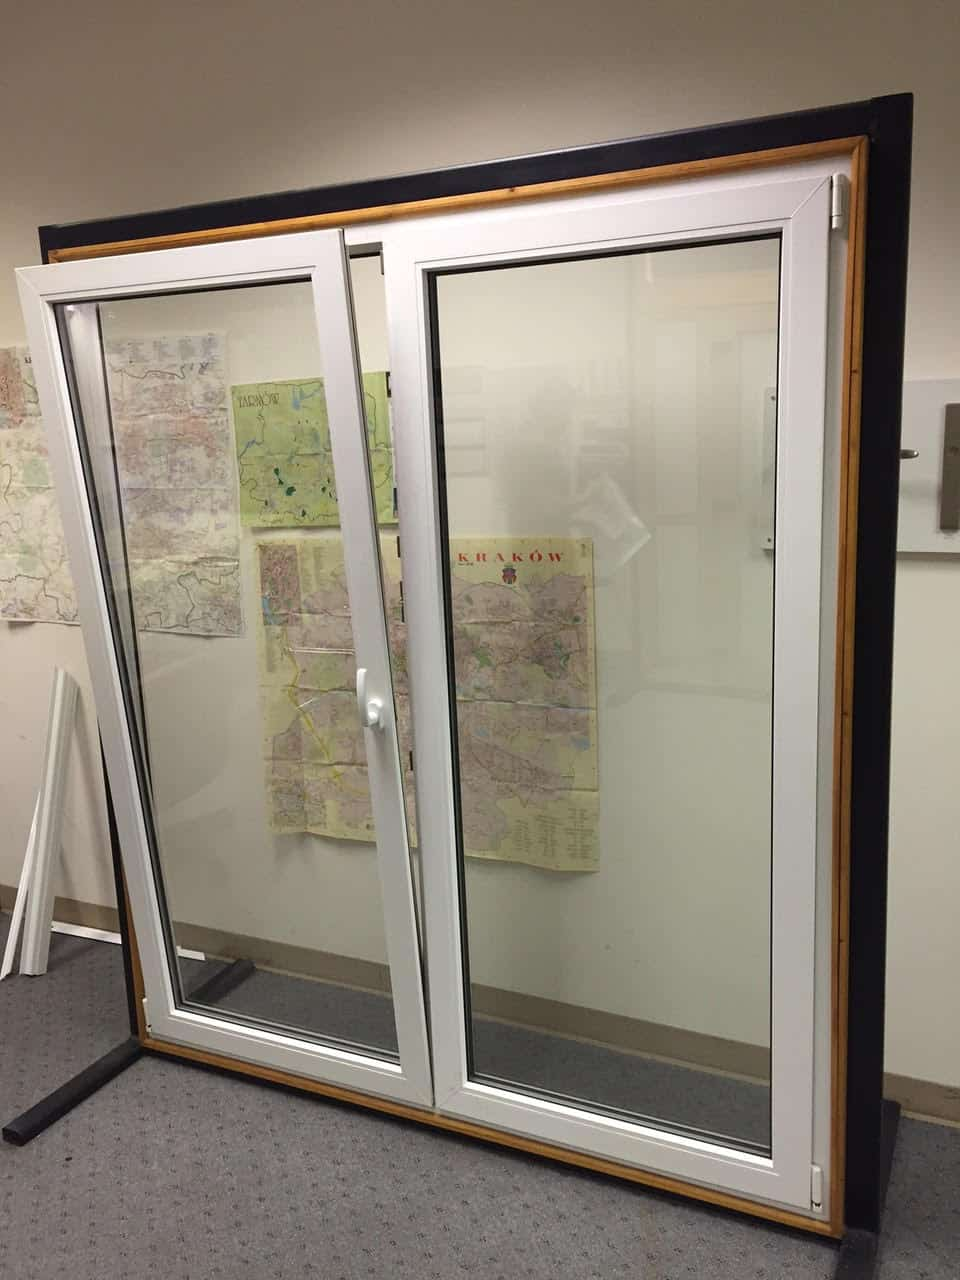 Euro door 39 s are chicago 39 s latest door trend for Thermal windows